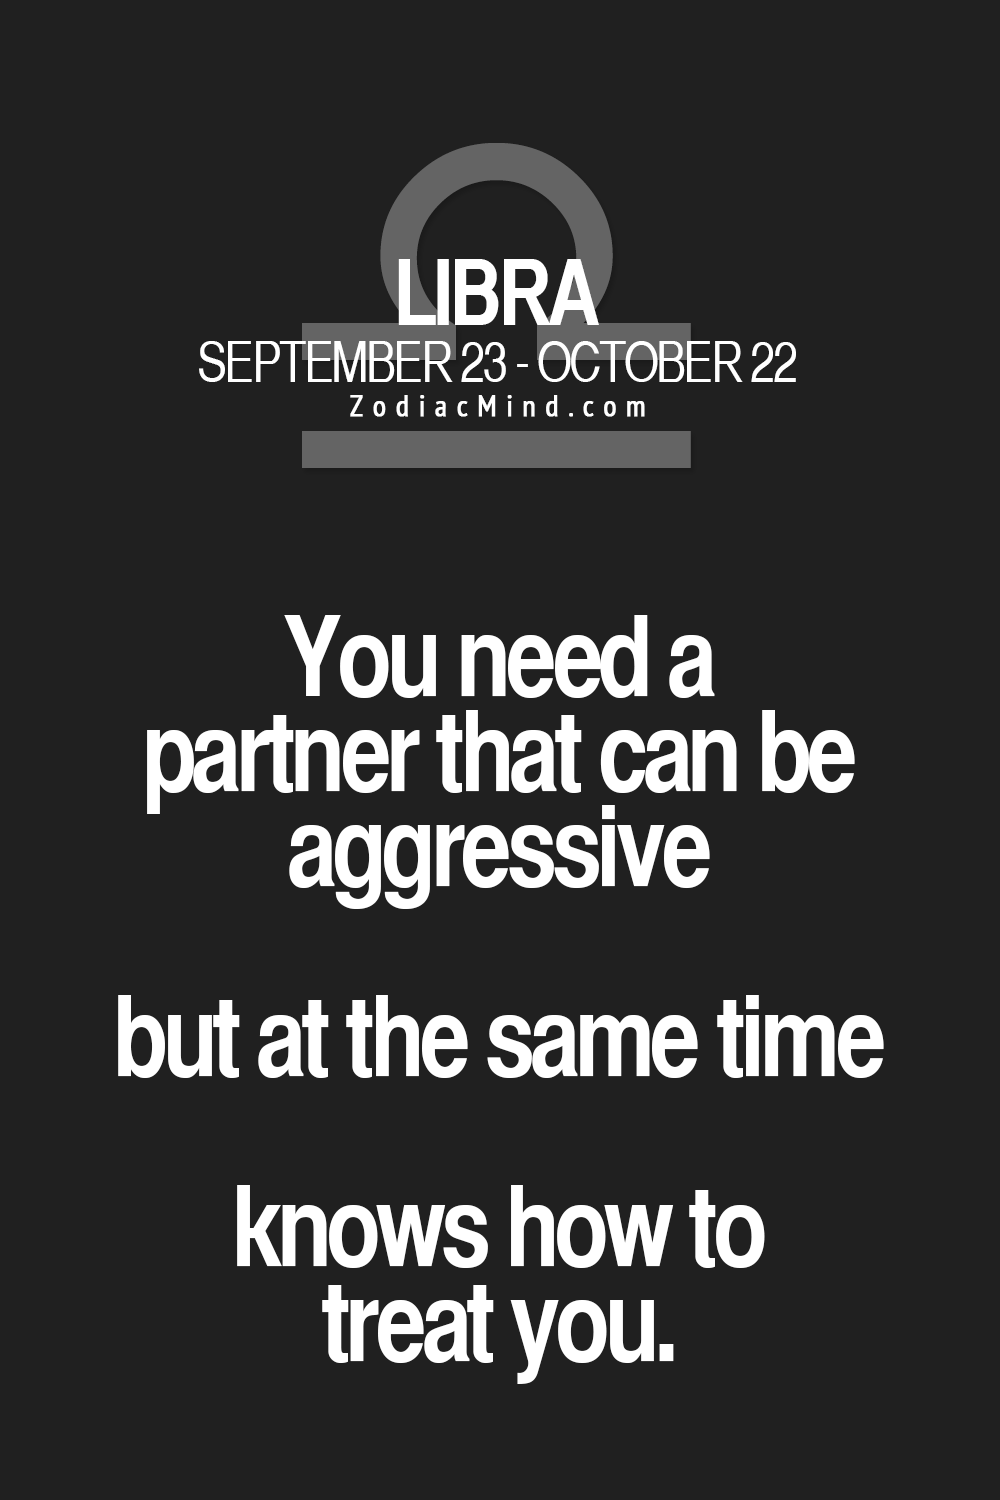 How to treat a libra man